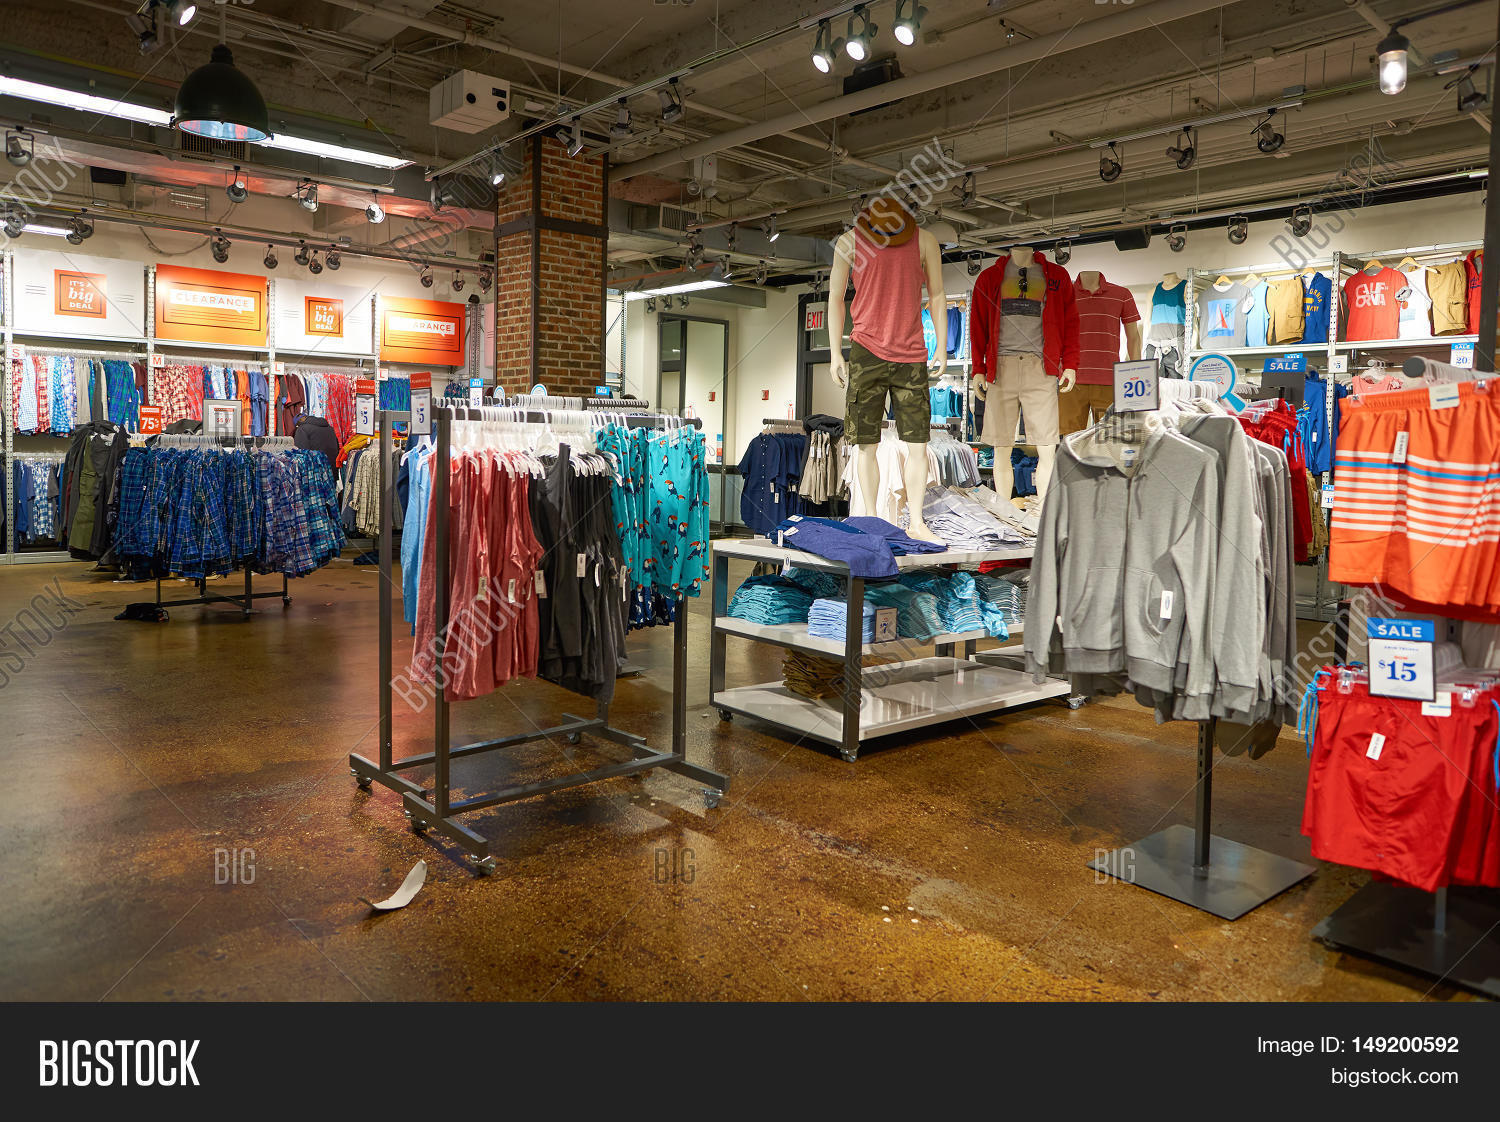 American Clothing Store Owned By Gap